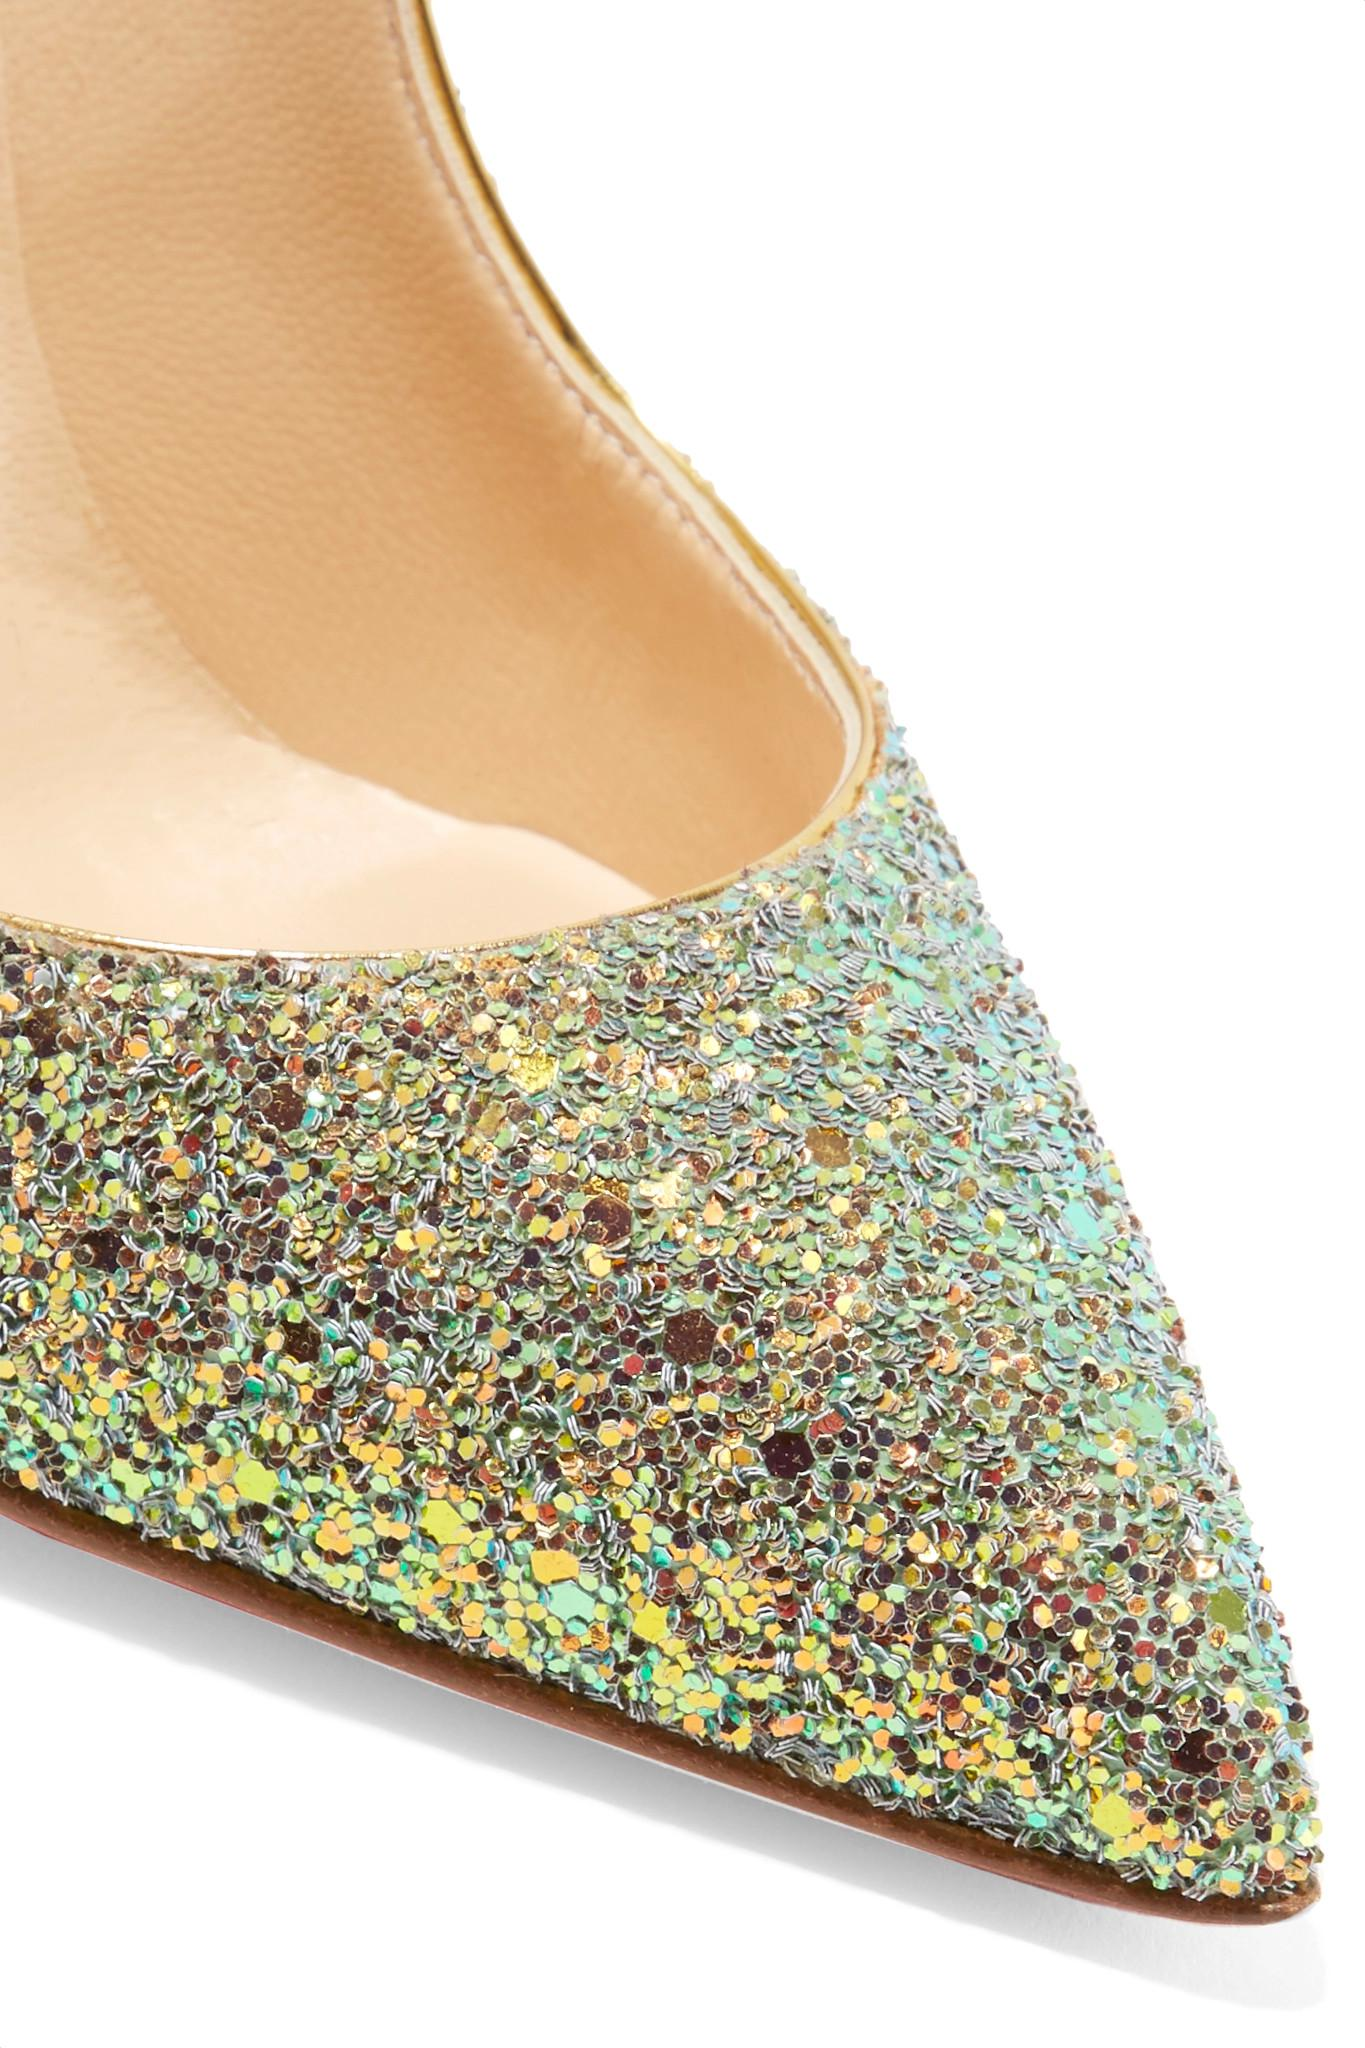 99d8d225c60 Lyst - Christian Louboutin Pigalle Follies Dragonfly 100 Glittered ...